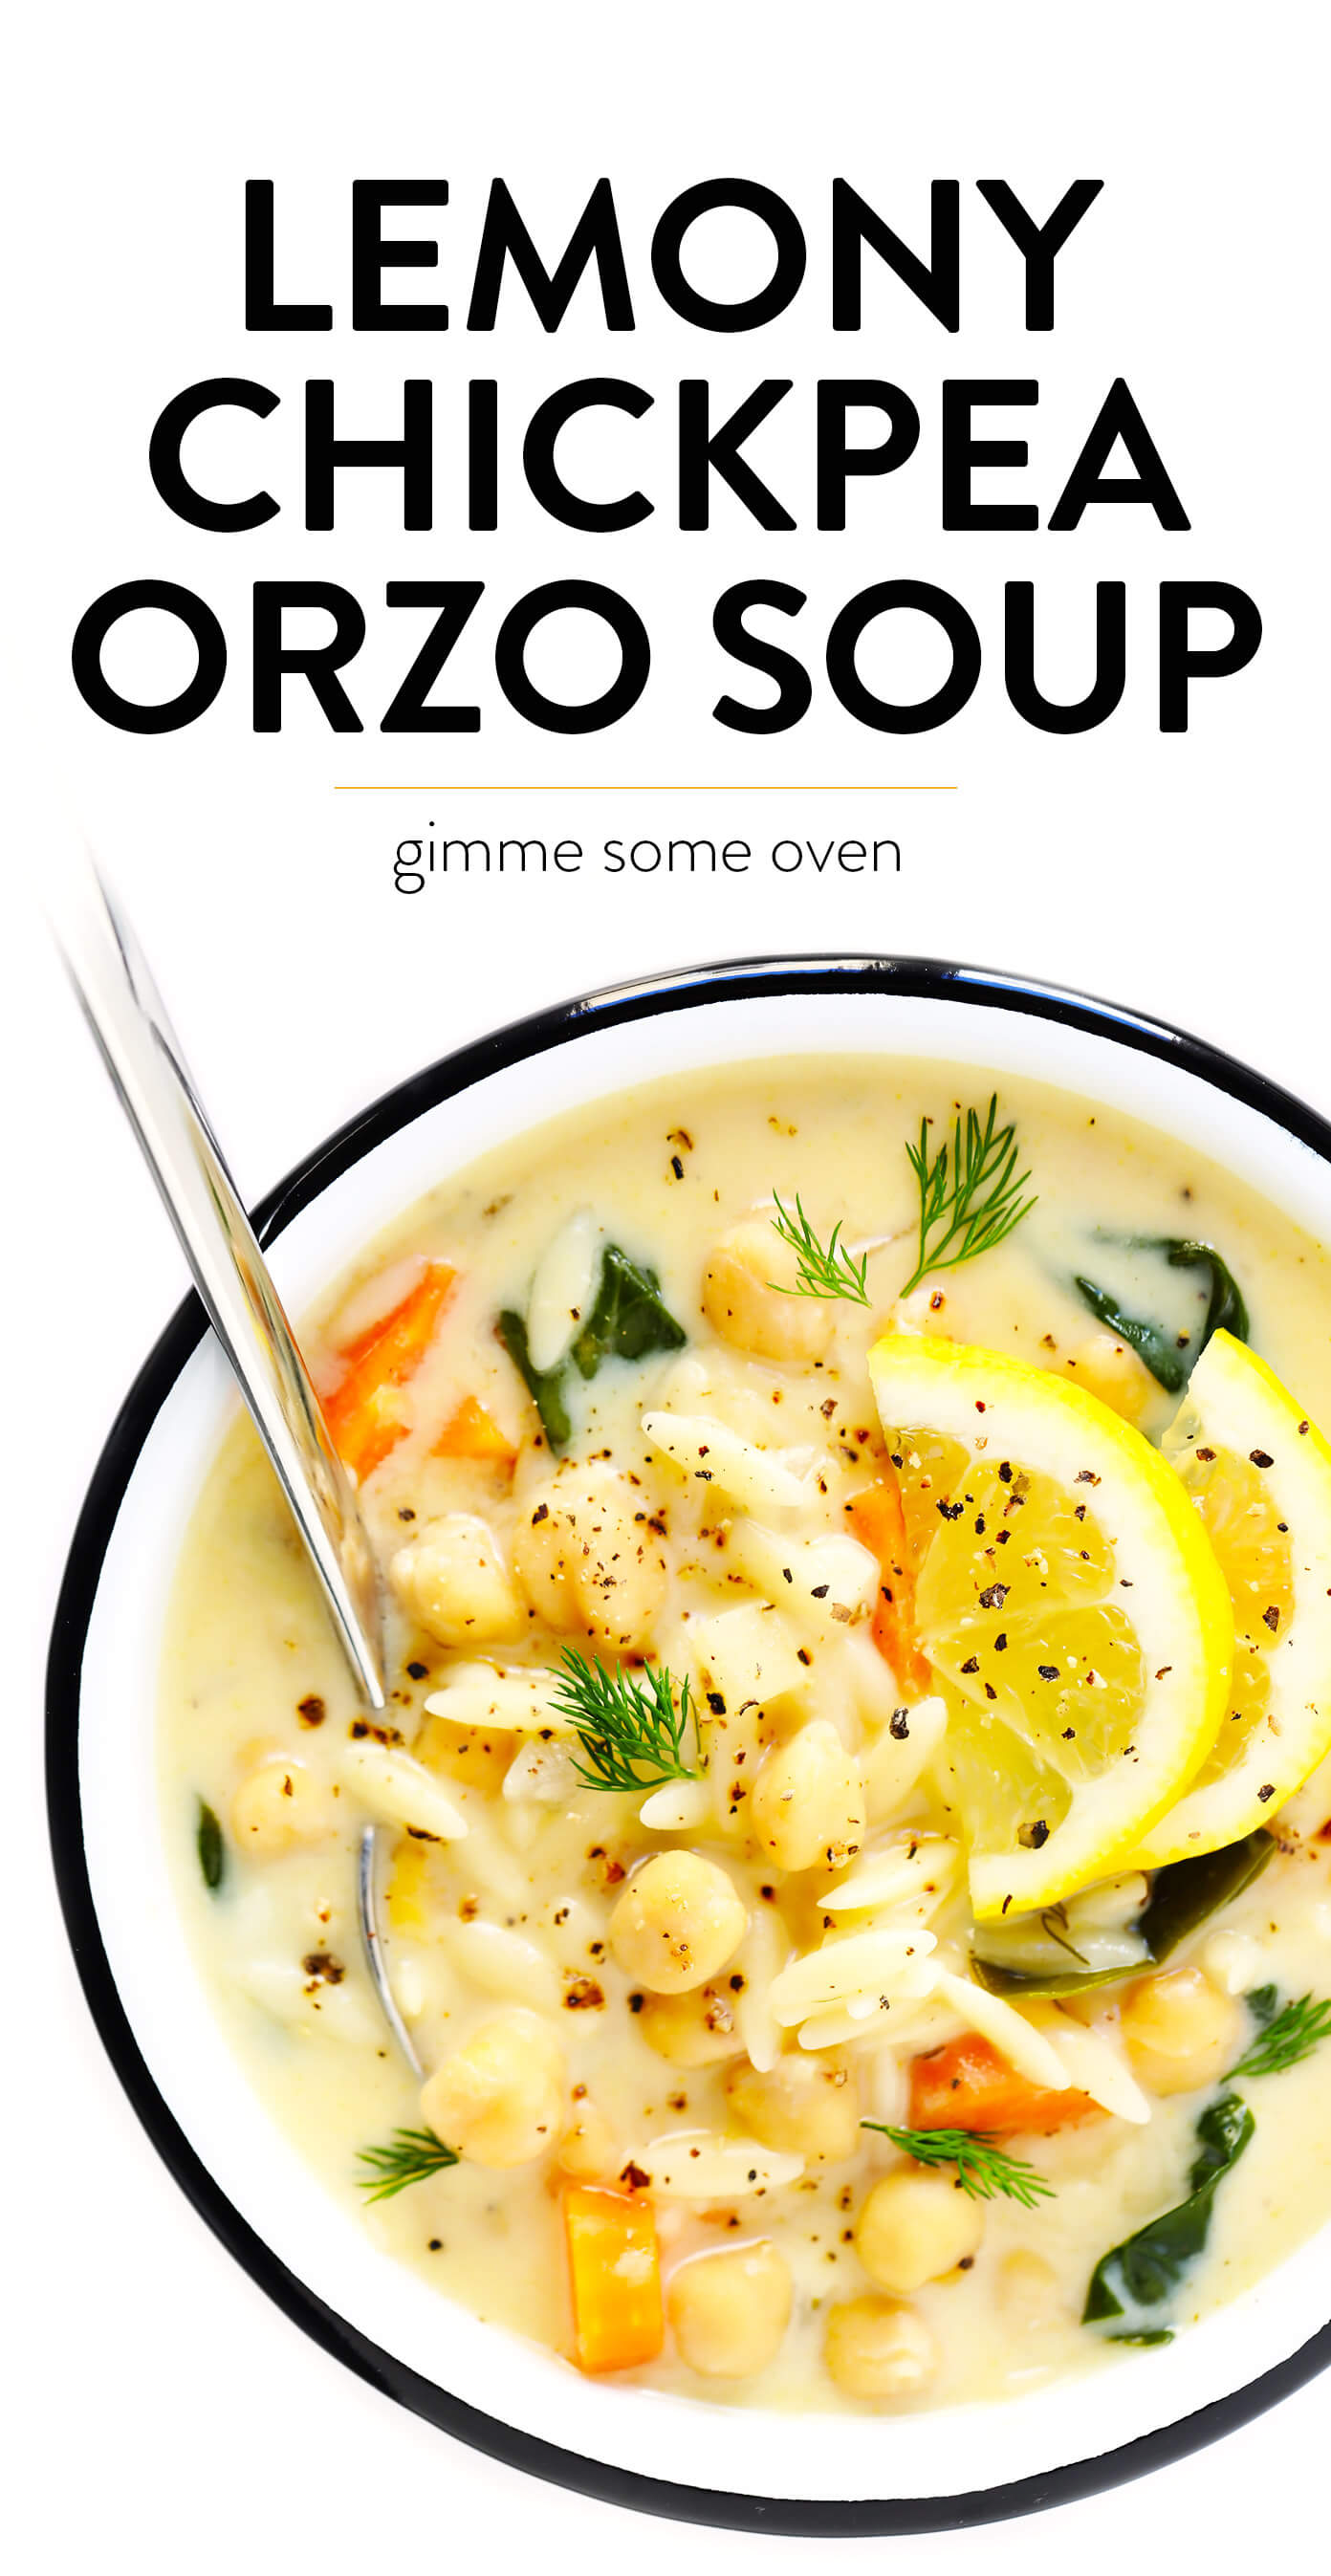 Lemony Chickpea Orzo Soup Recipe